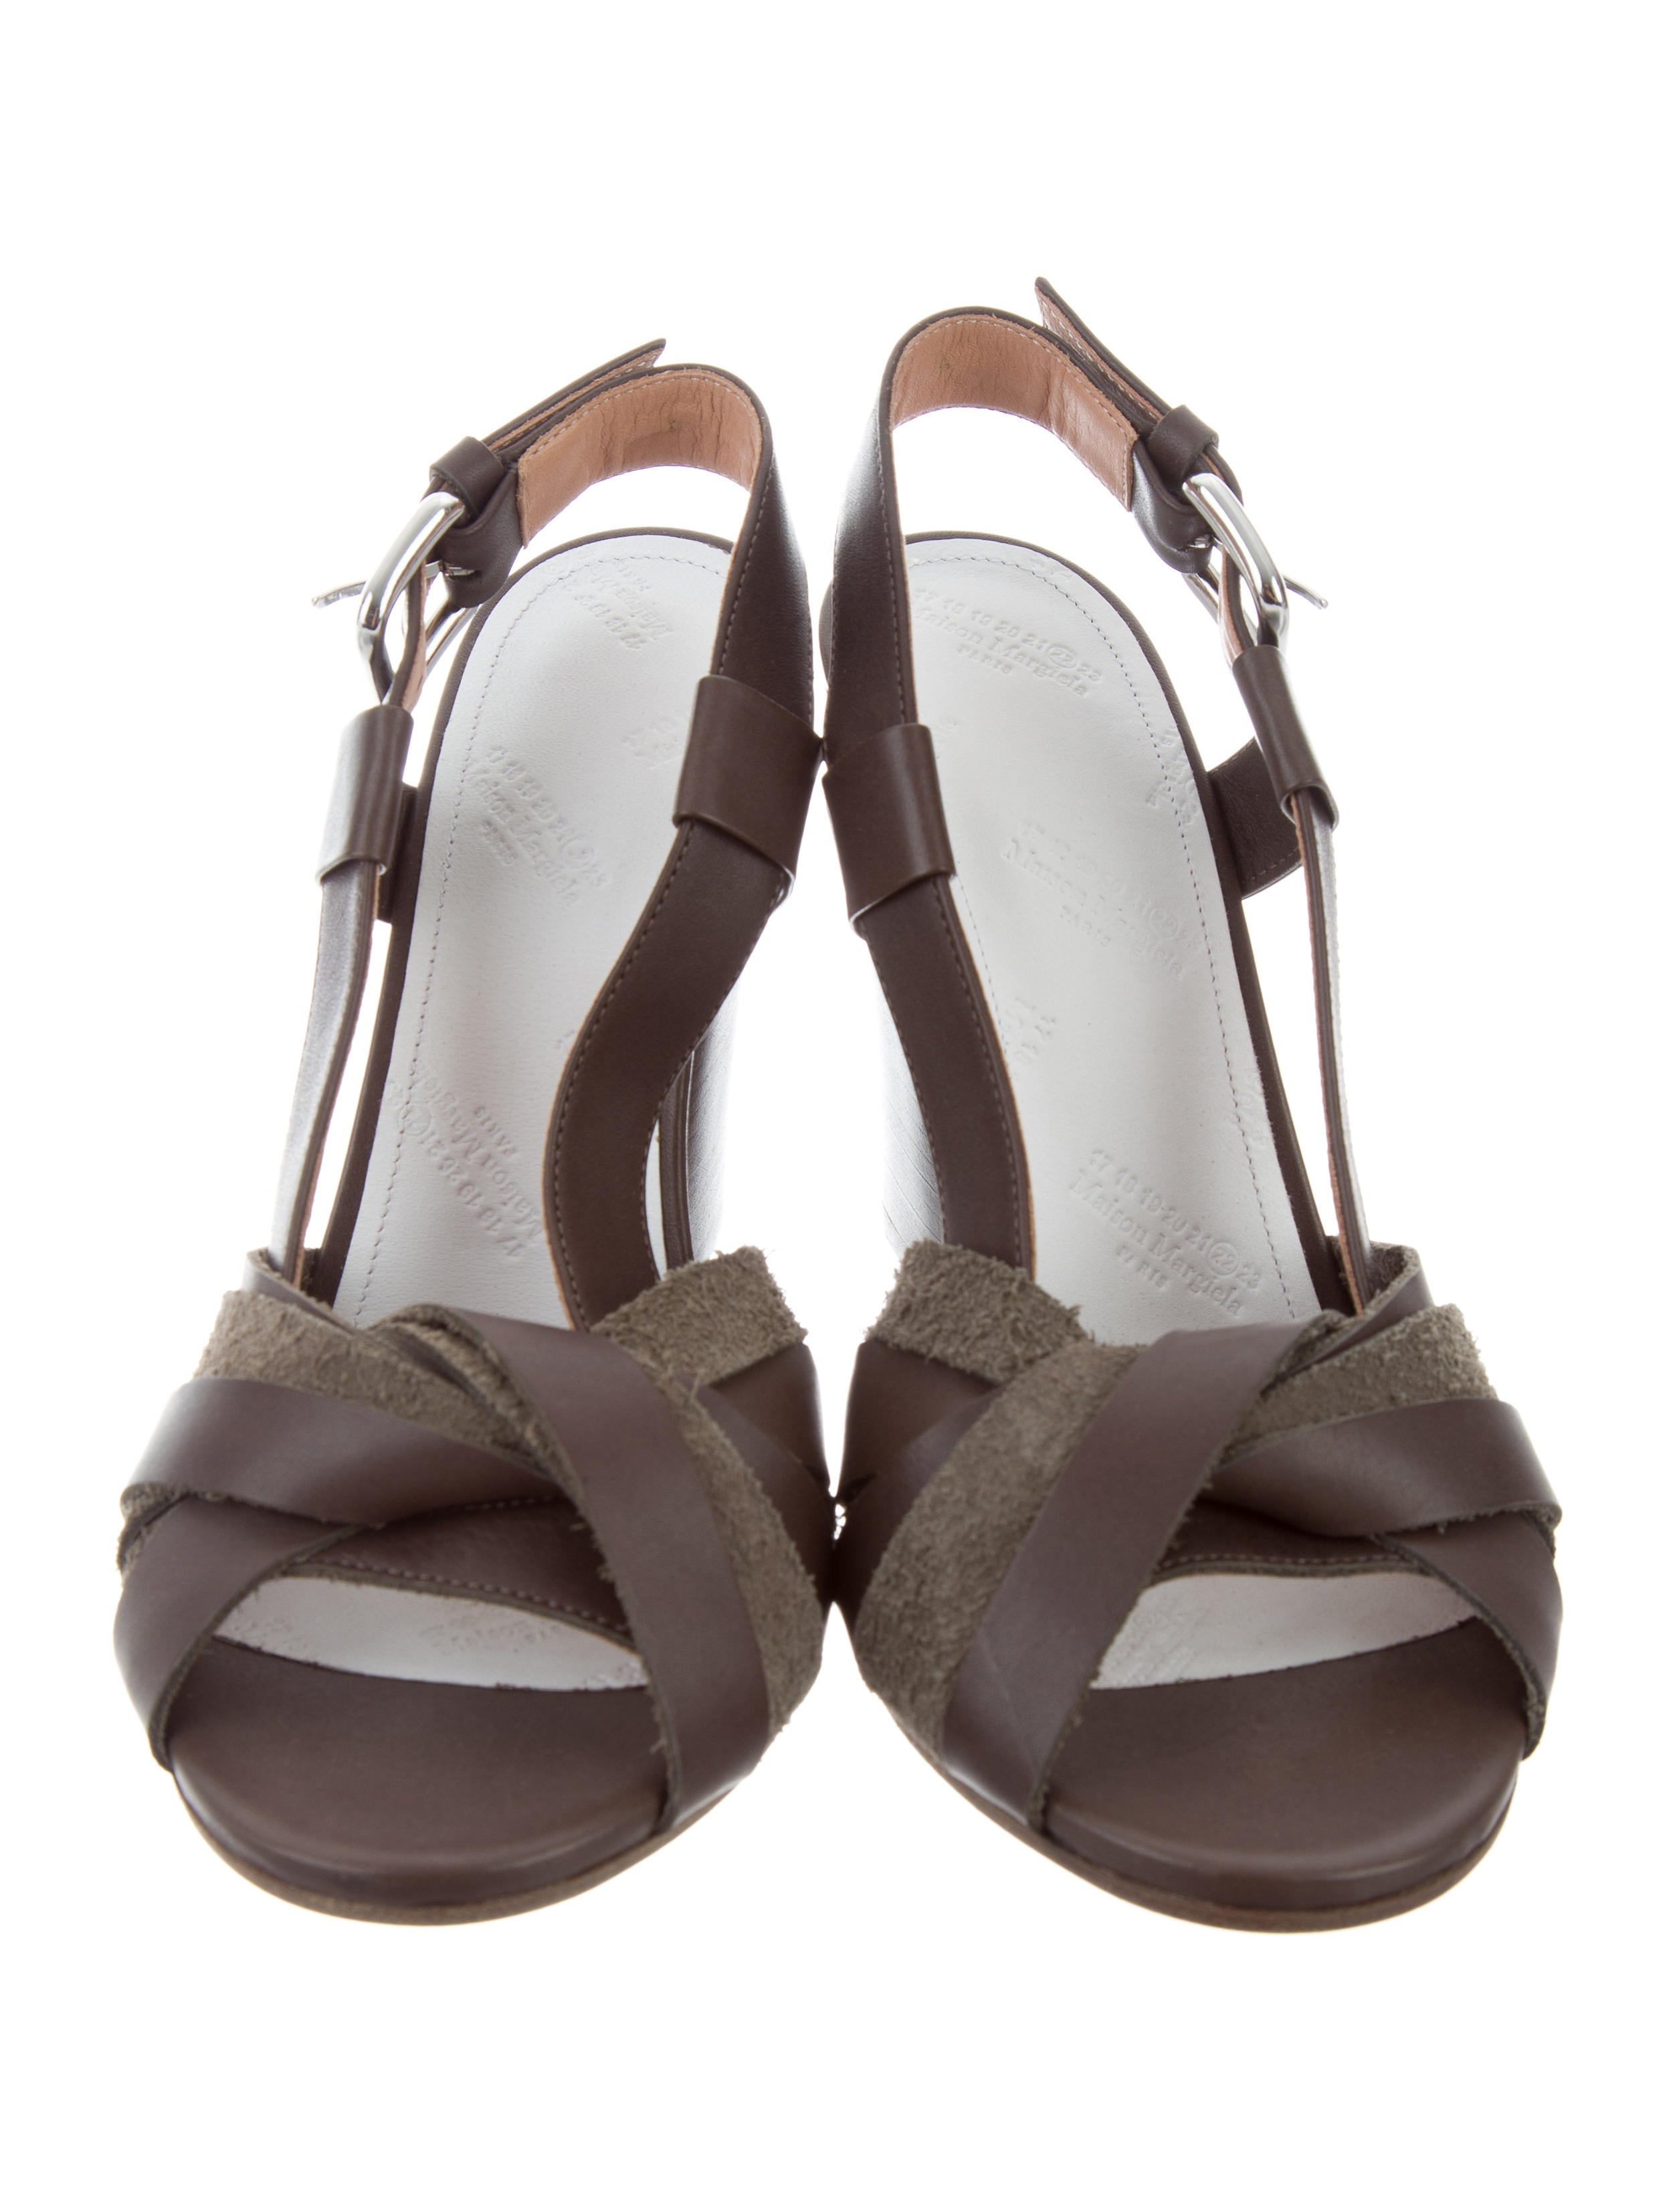 discount good selling Maison Margiela Twetty Colorblock Sandals w/ Tags sast online rkIacrb9